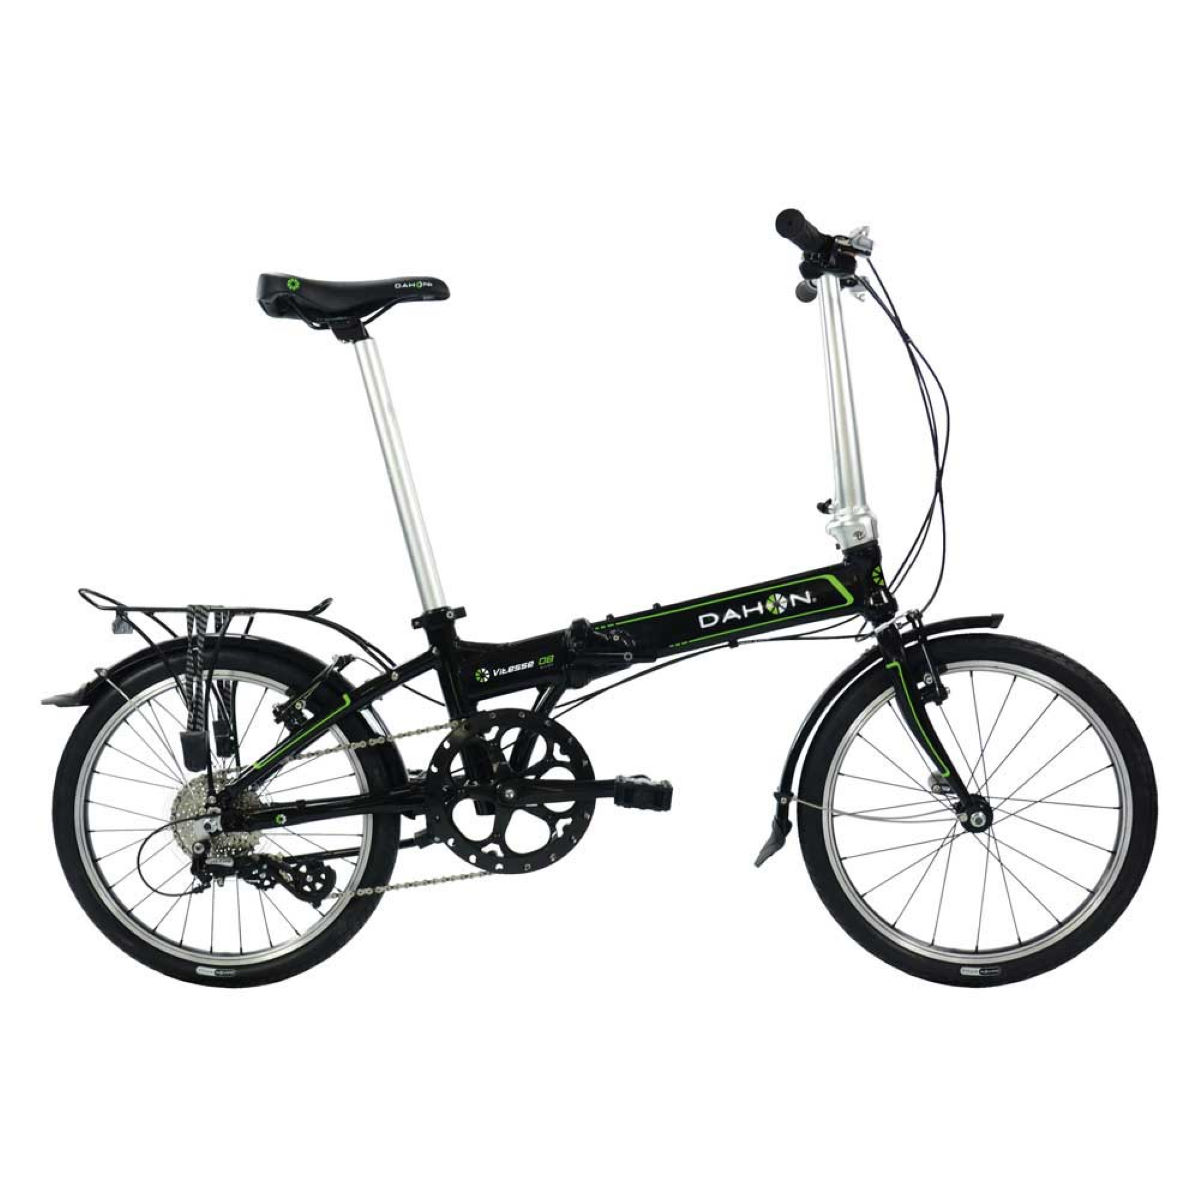 Bicicleta plegable Dahon Vitesse D8 Equipped (2016) - Bicicletas plegables